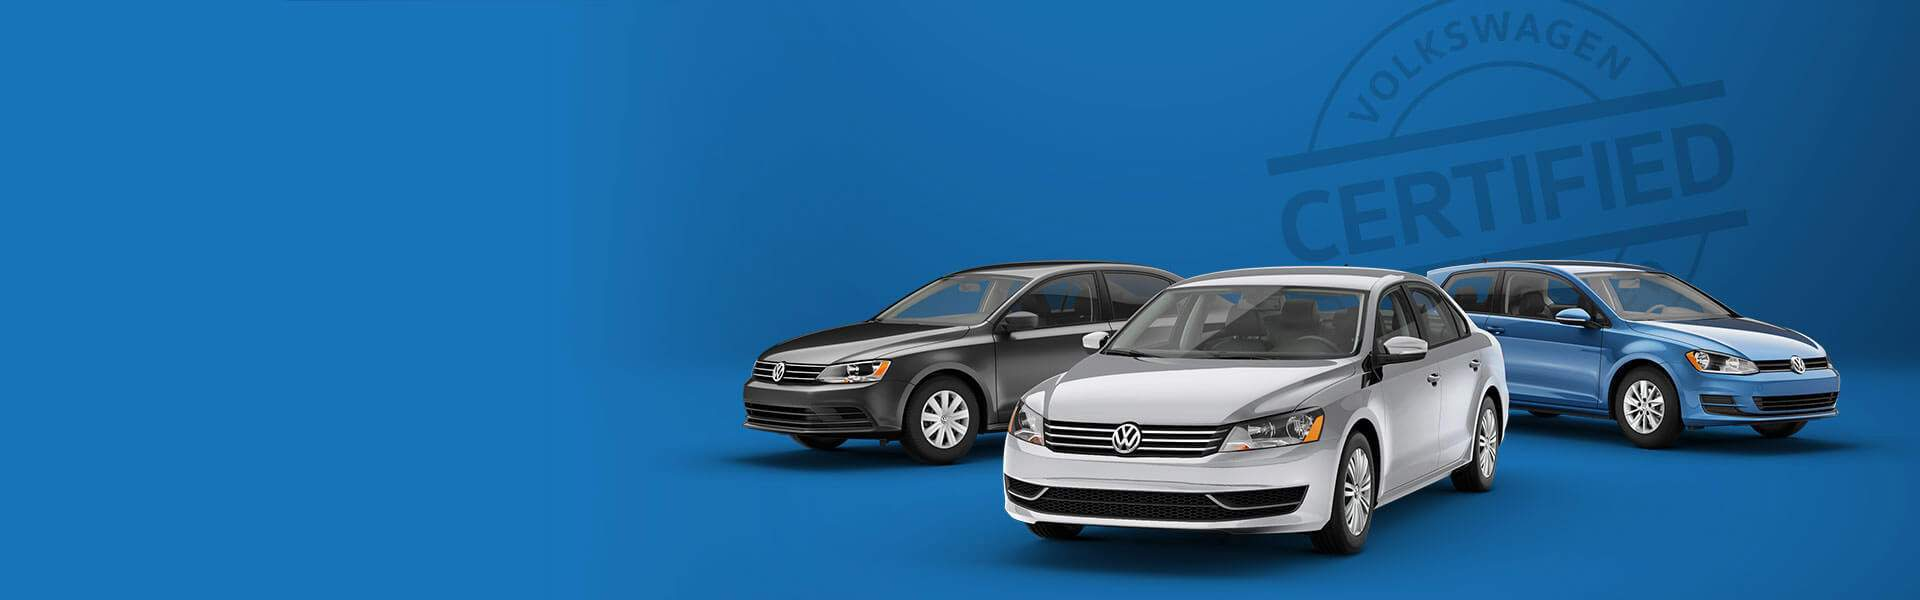 Volkswagen Certified Pre-Owned in Bronx, NY